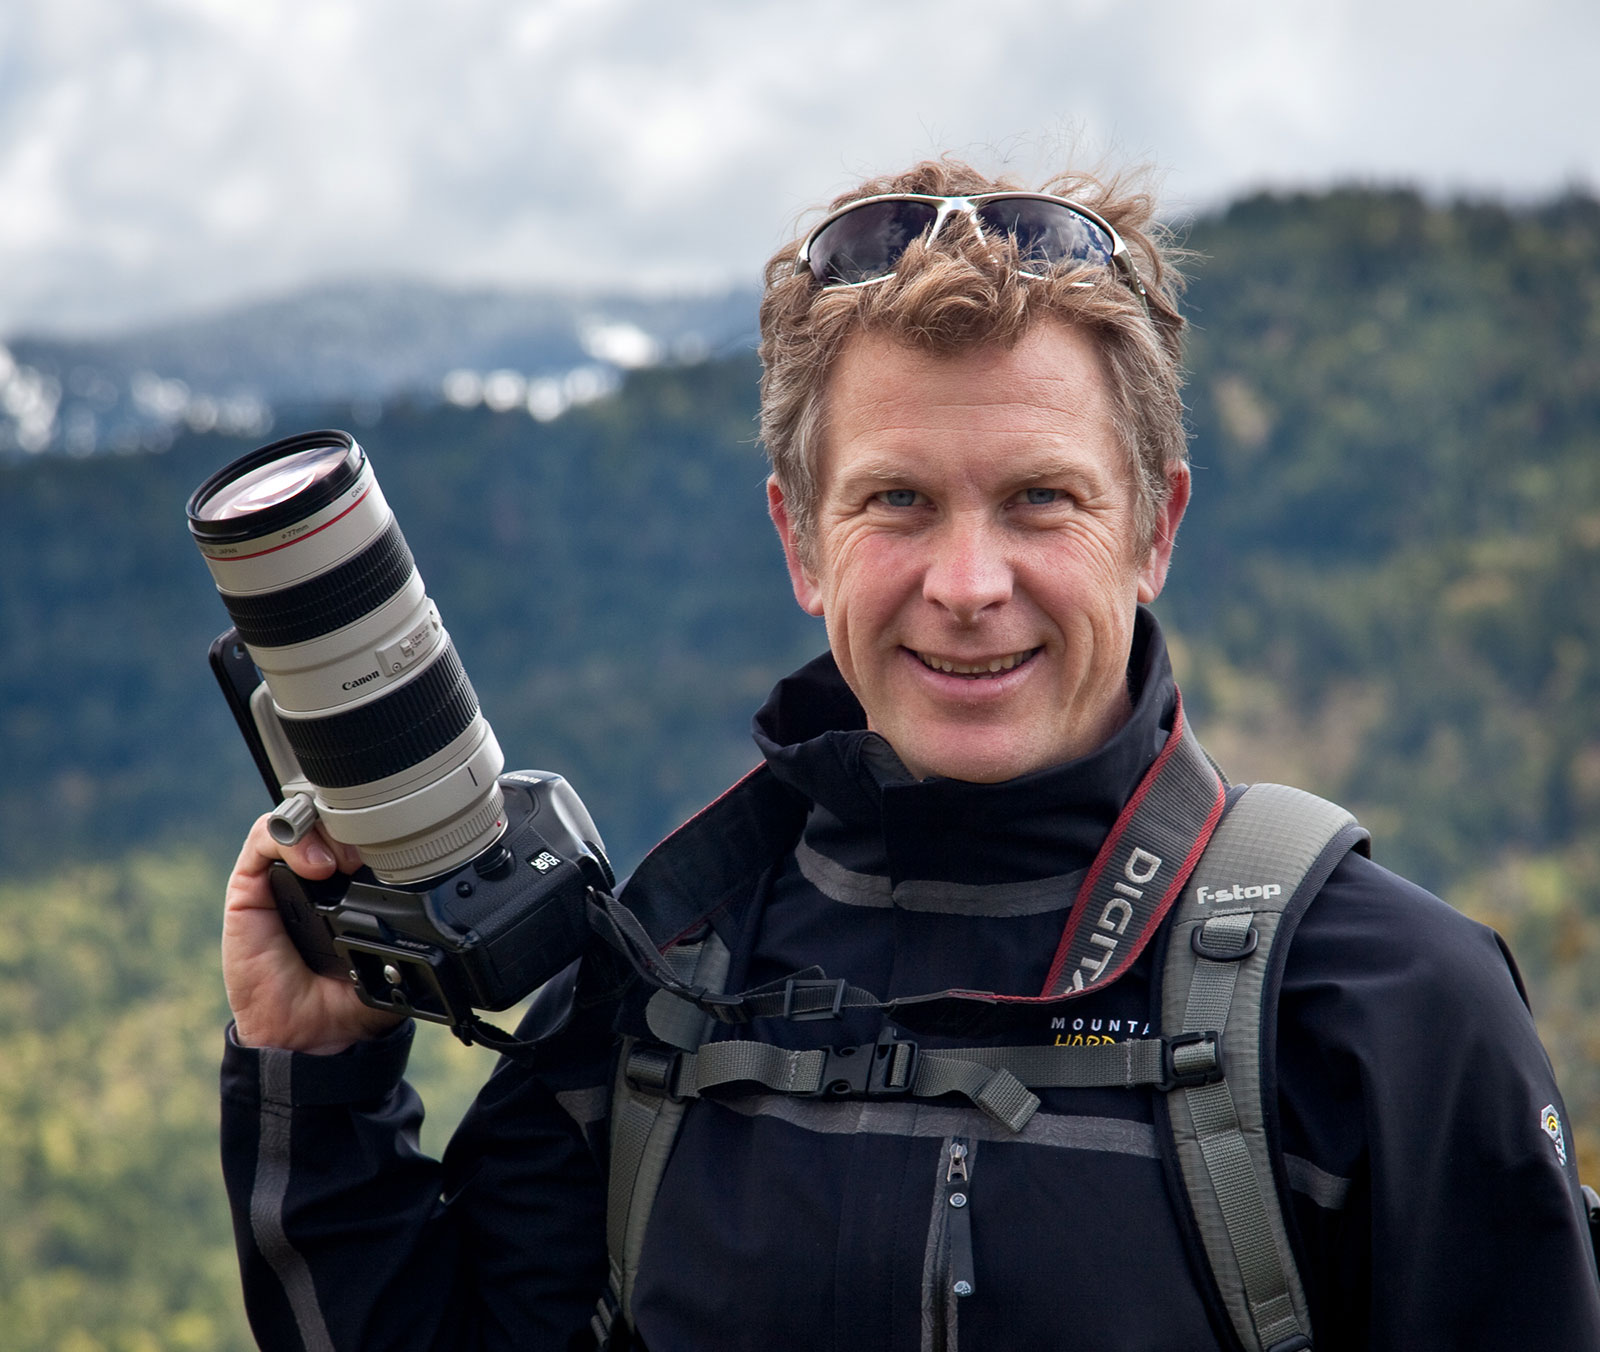 Sean Bagshaw, Landscape Photographer and Educator